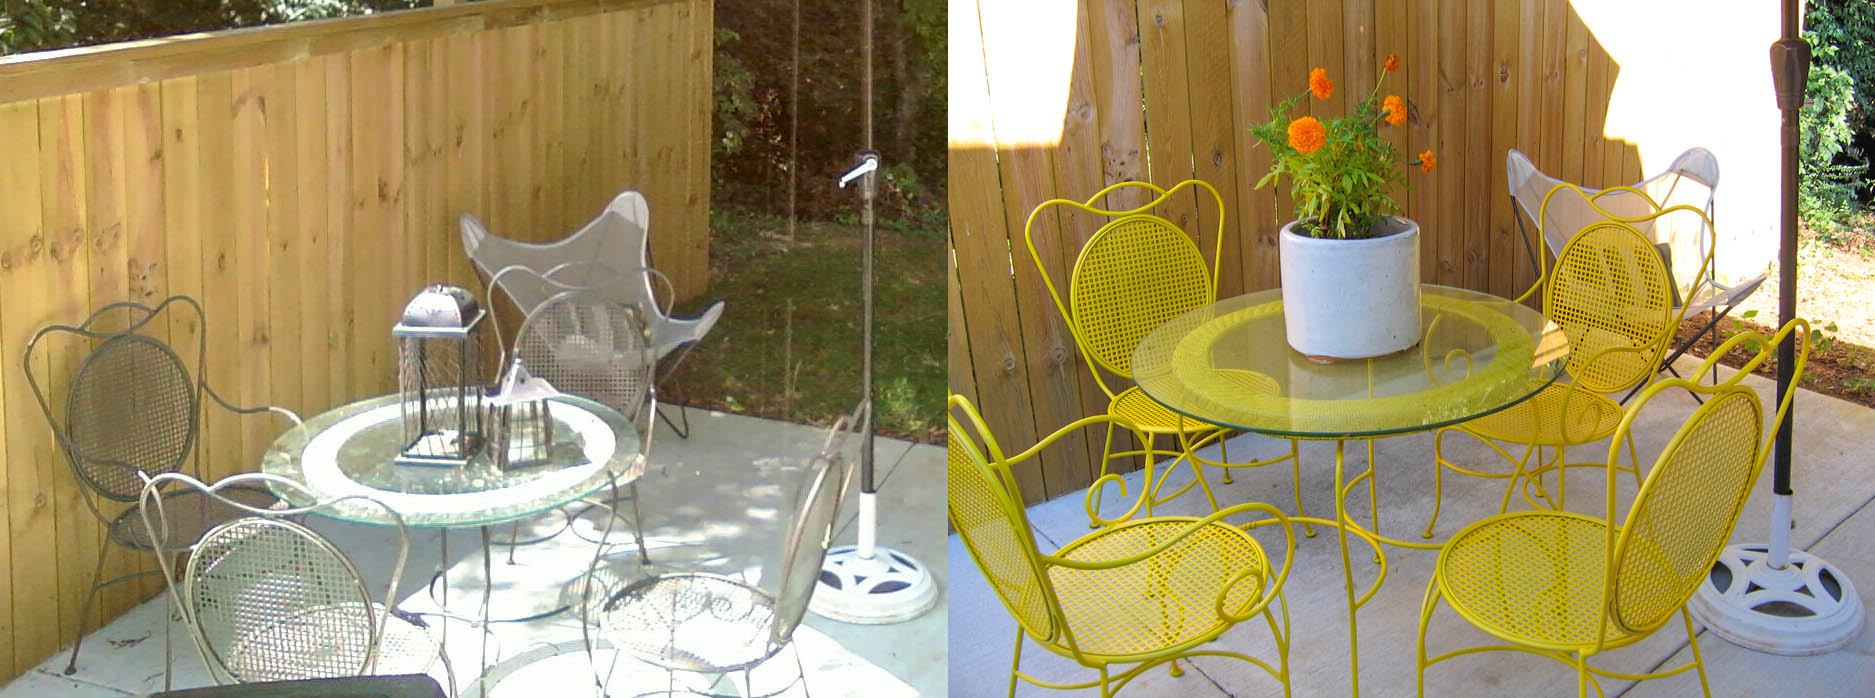 yellow patio furniture. Before \u0026 After Patio Set Yellow Furniture